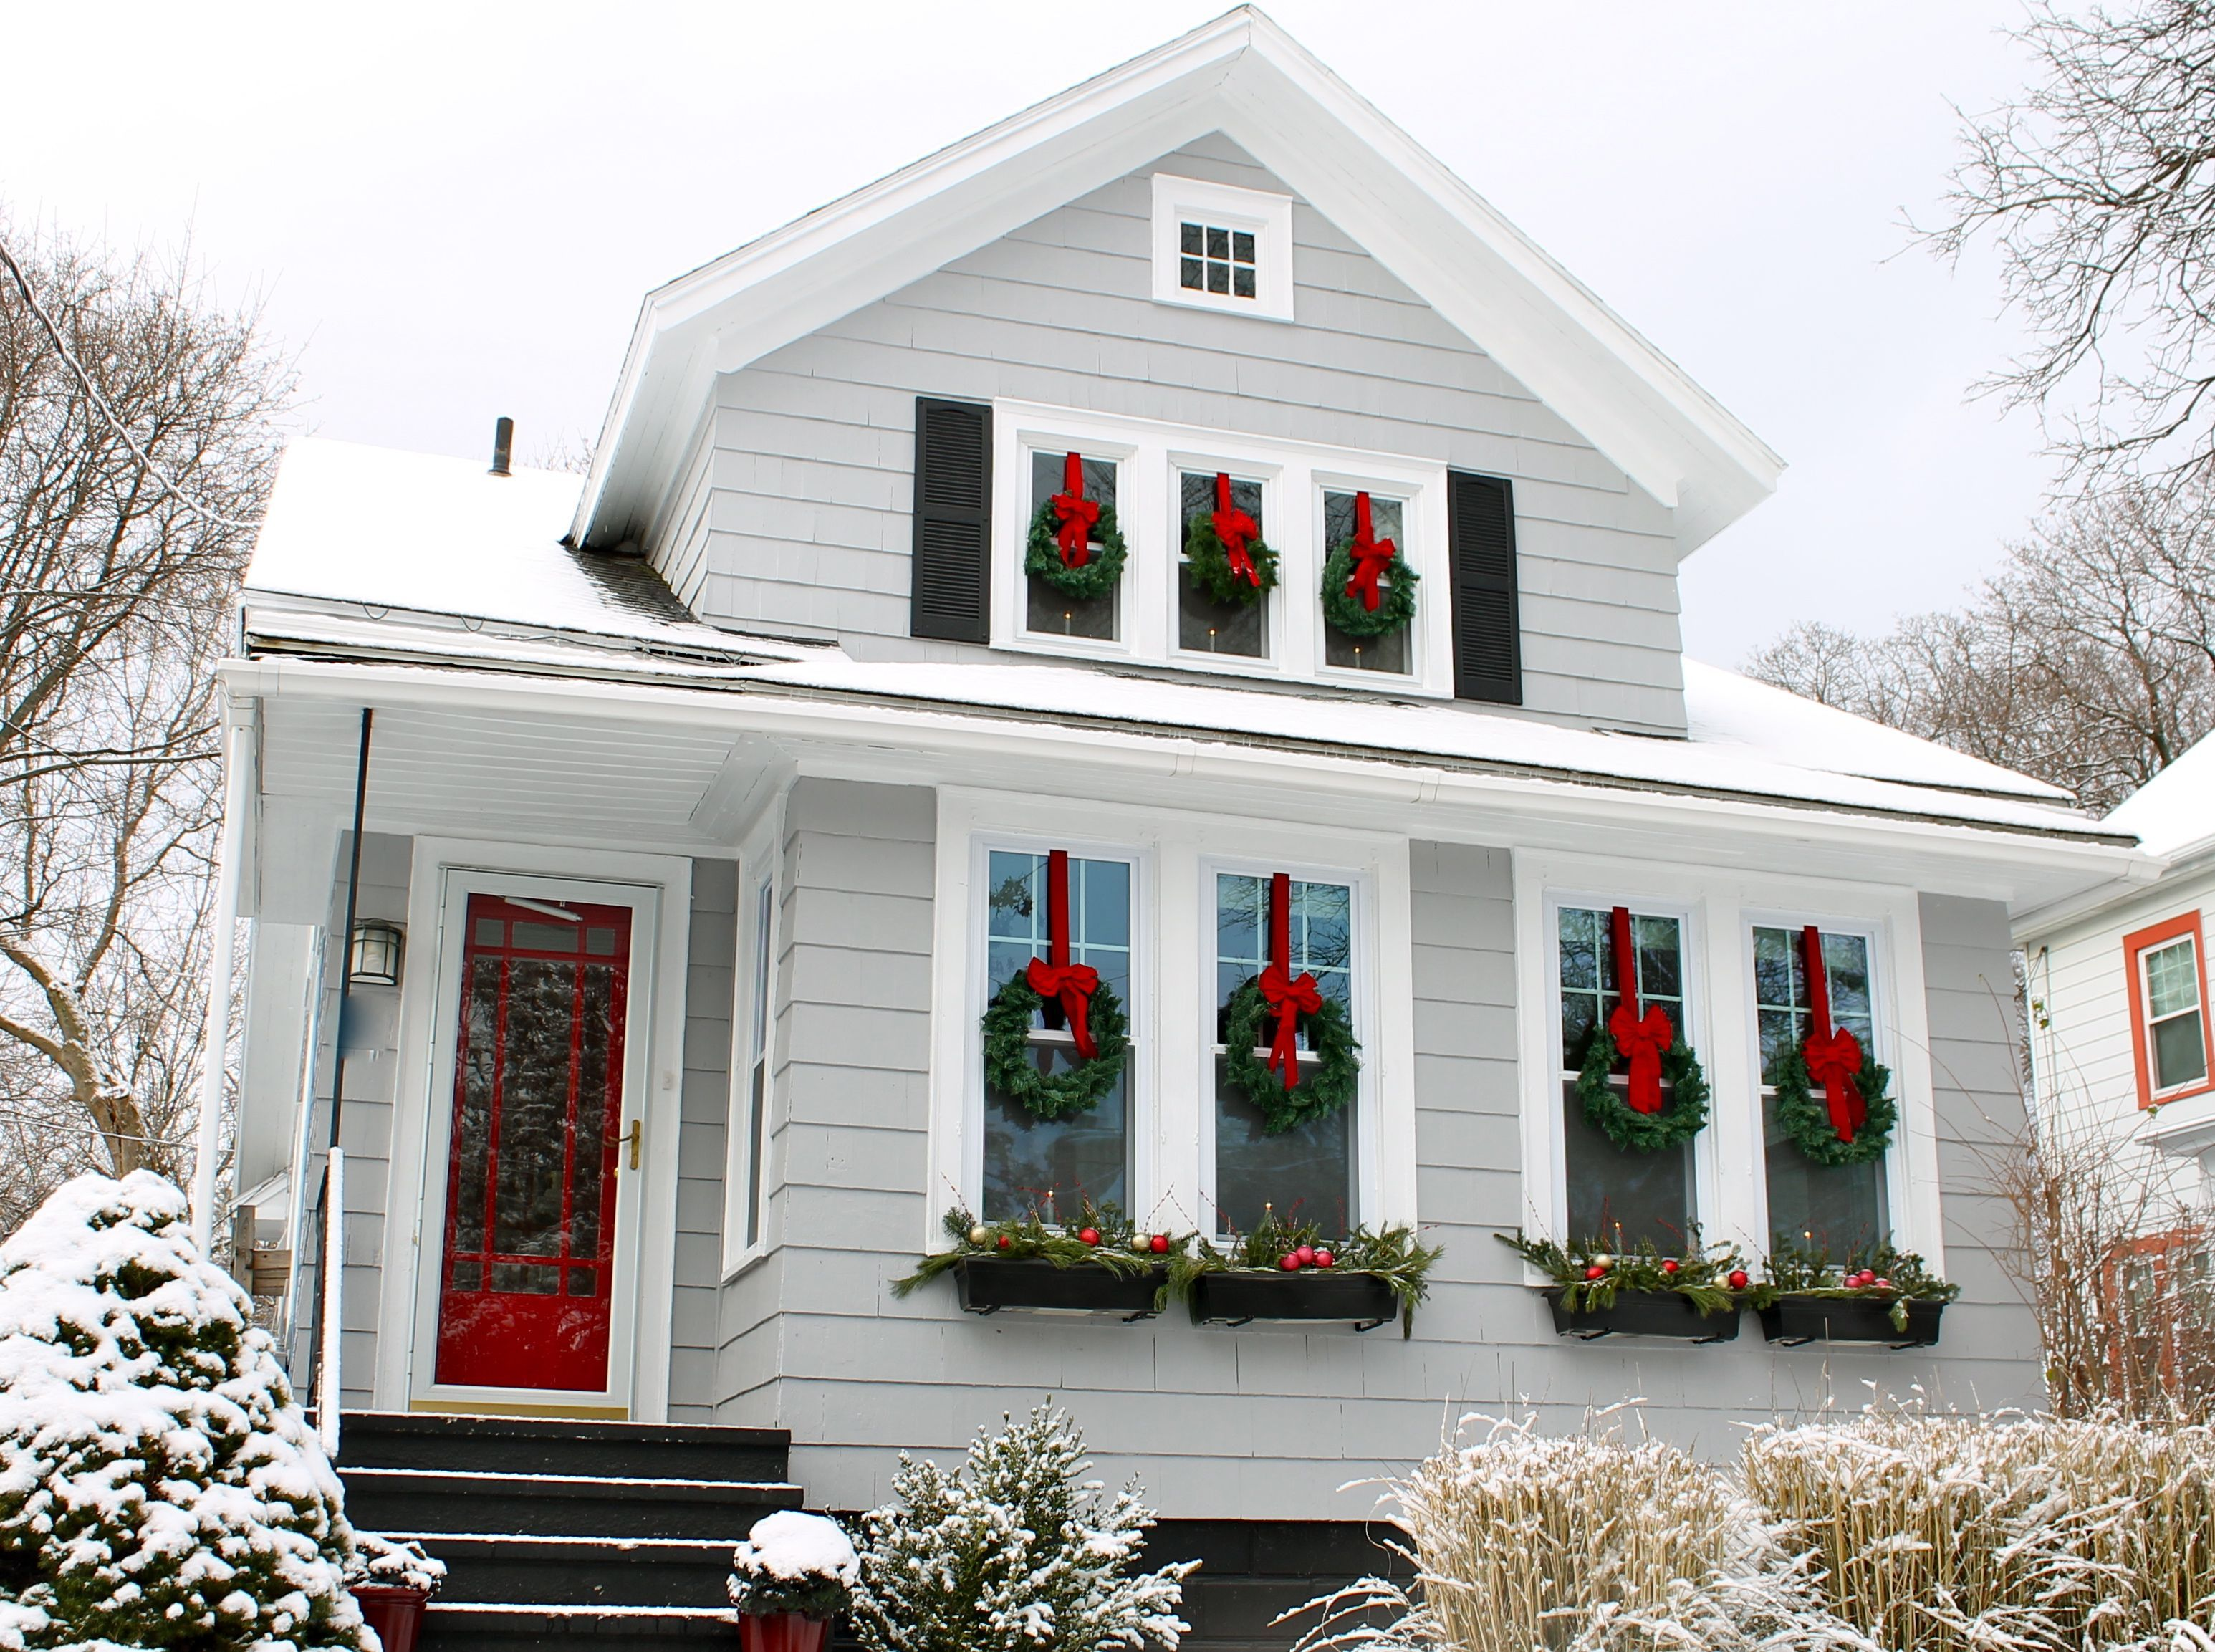 Holiday House | Pinterest | Wreaths, Window and Doors